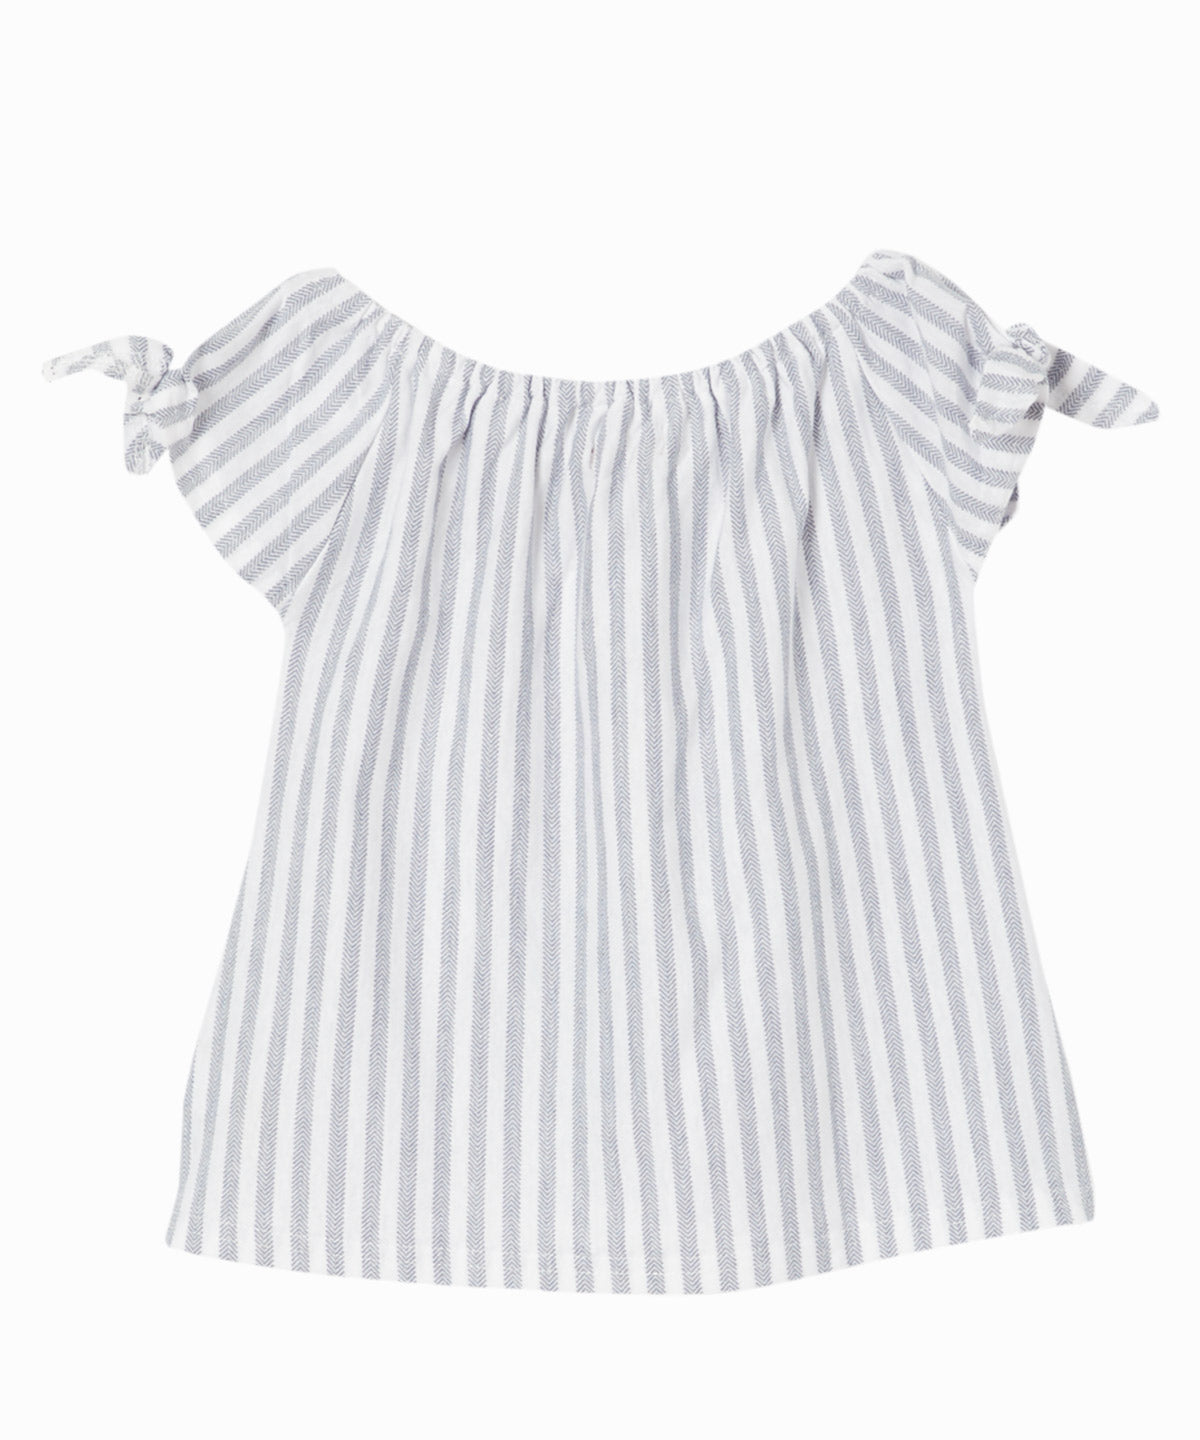 Indigo Stripe Shoulder Tie Top